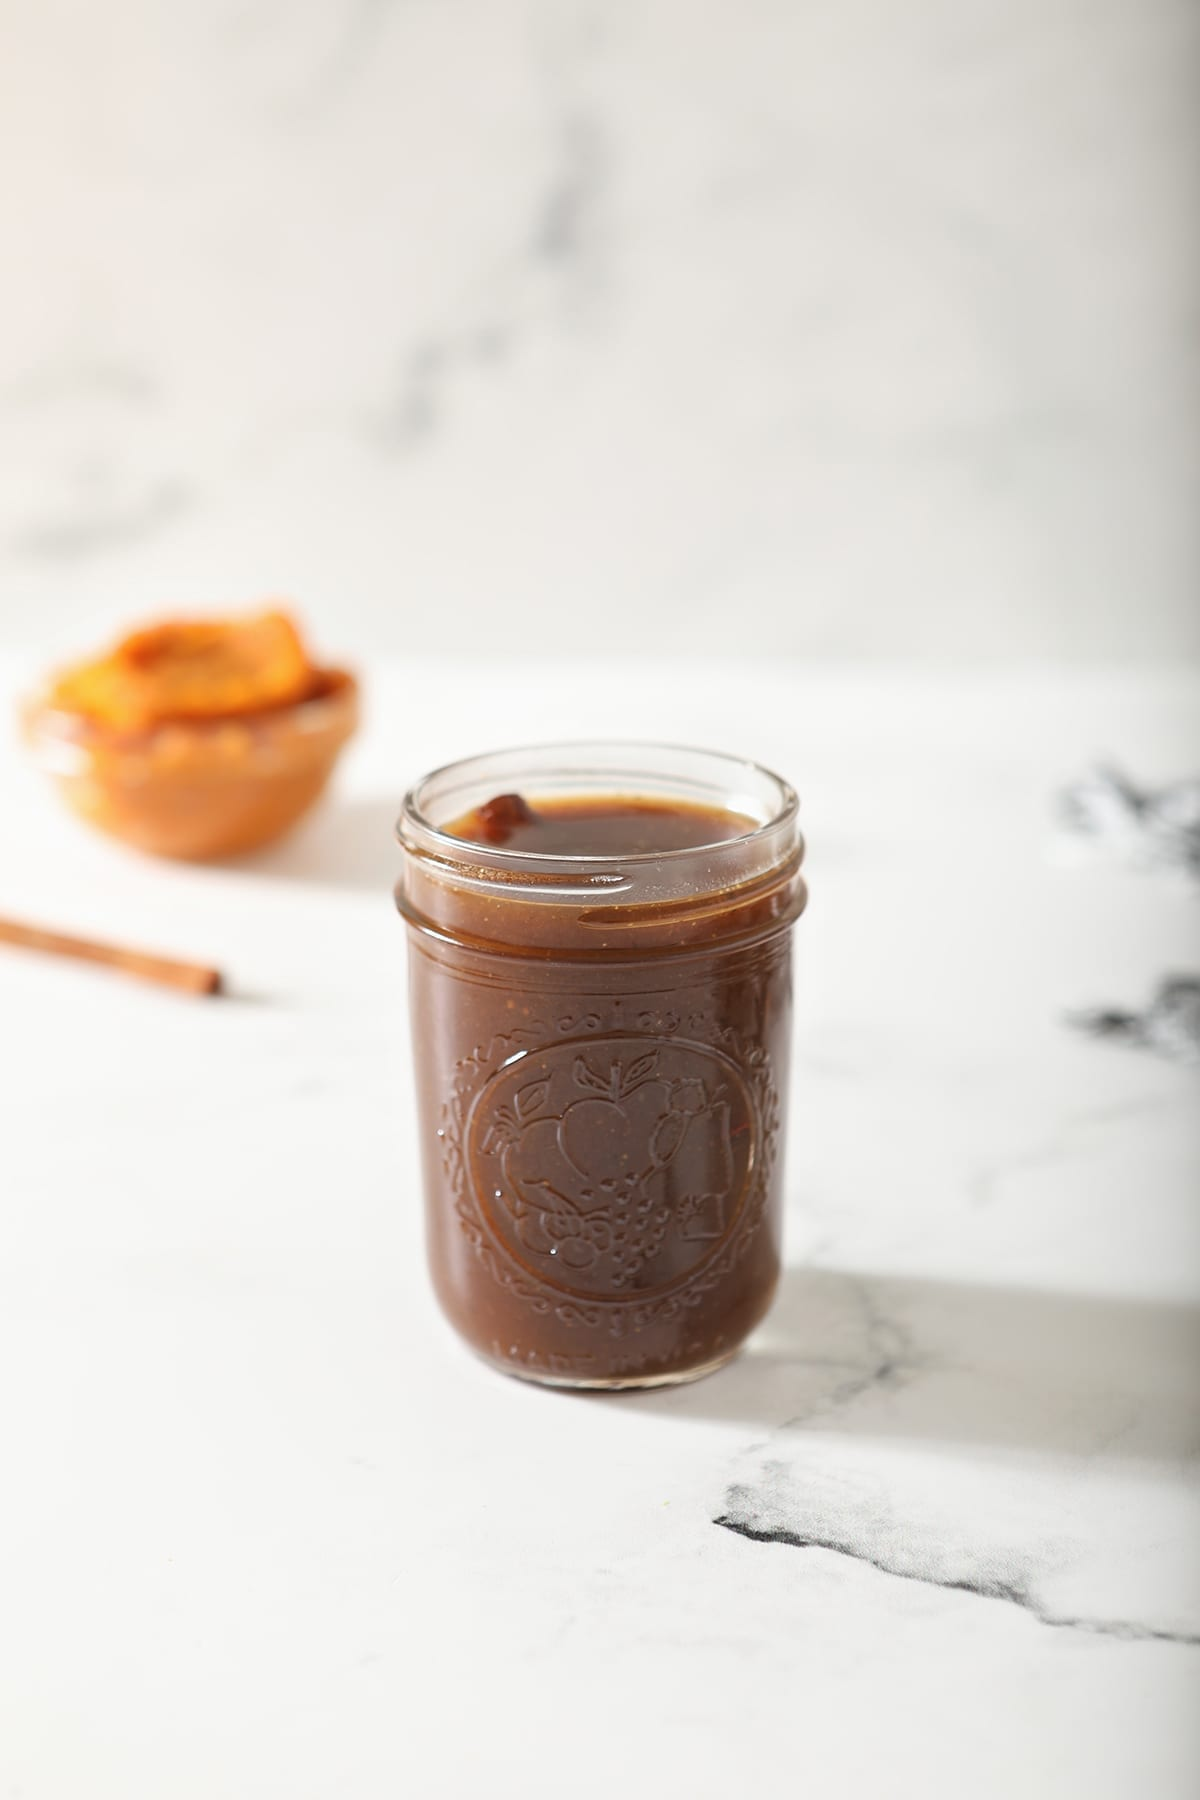 A jar of Pumpkin Spice Syrup sits on marble with a cinnamon stick and pumpkin puree behind it